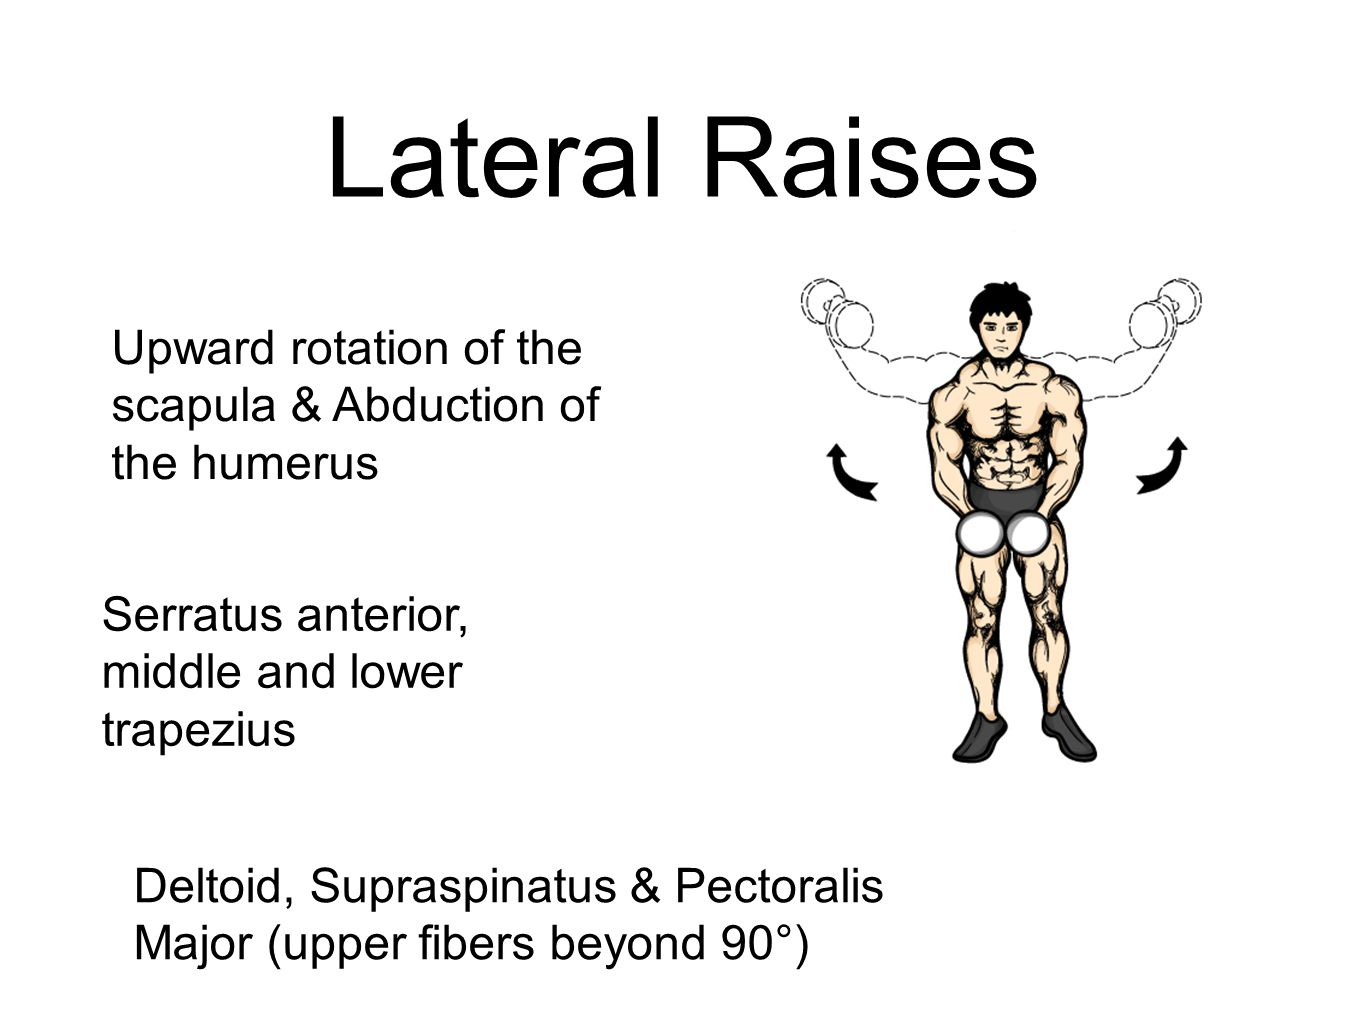 Lateral Raises Upward rotation of the scapula & Abduction of the humerus. Serratus anterior, middle and lower trapezius.